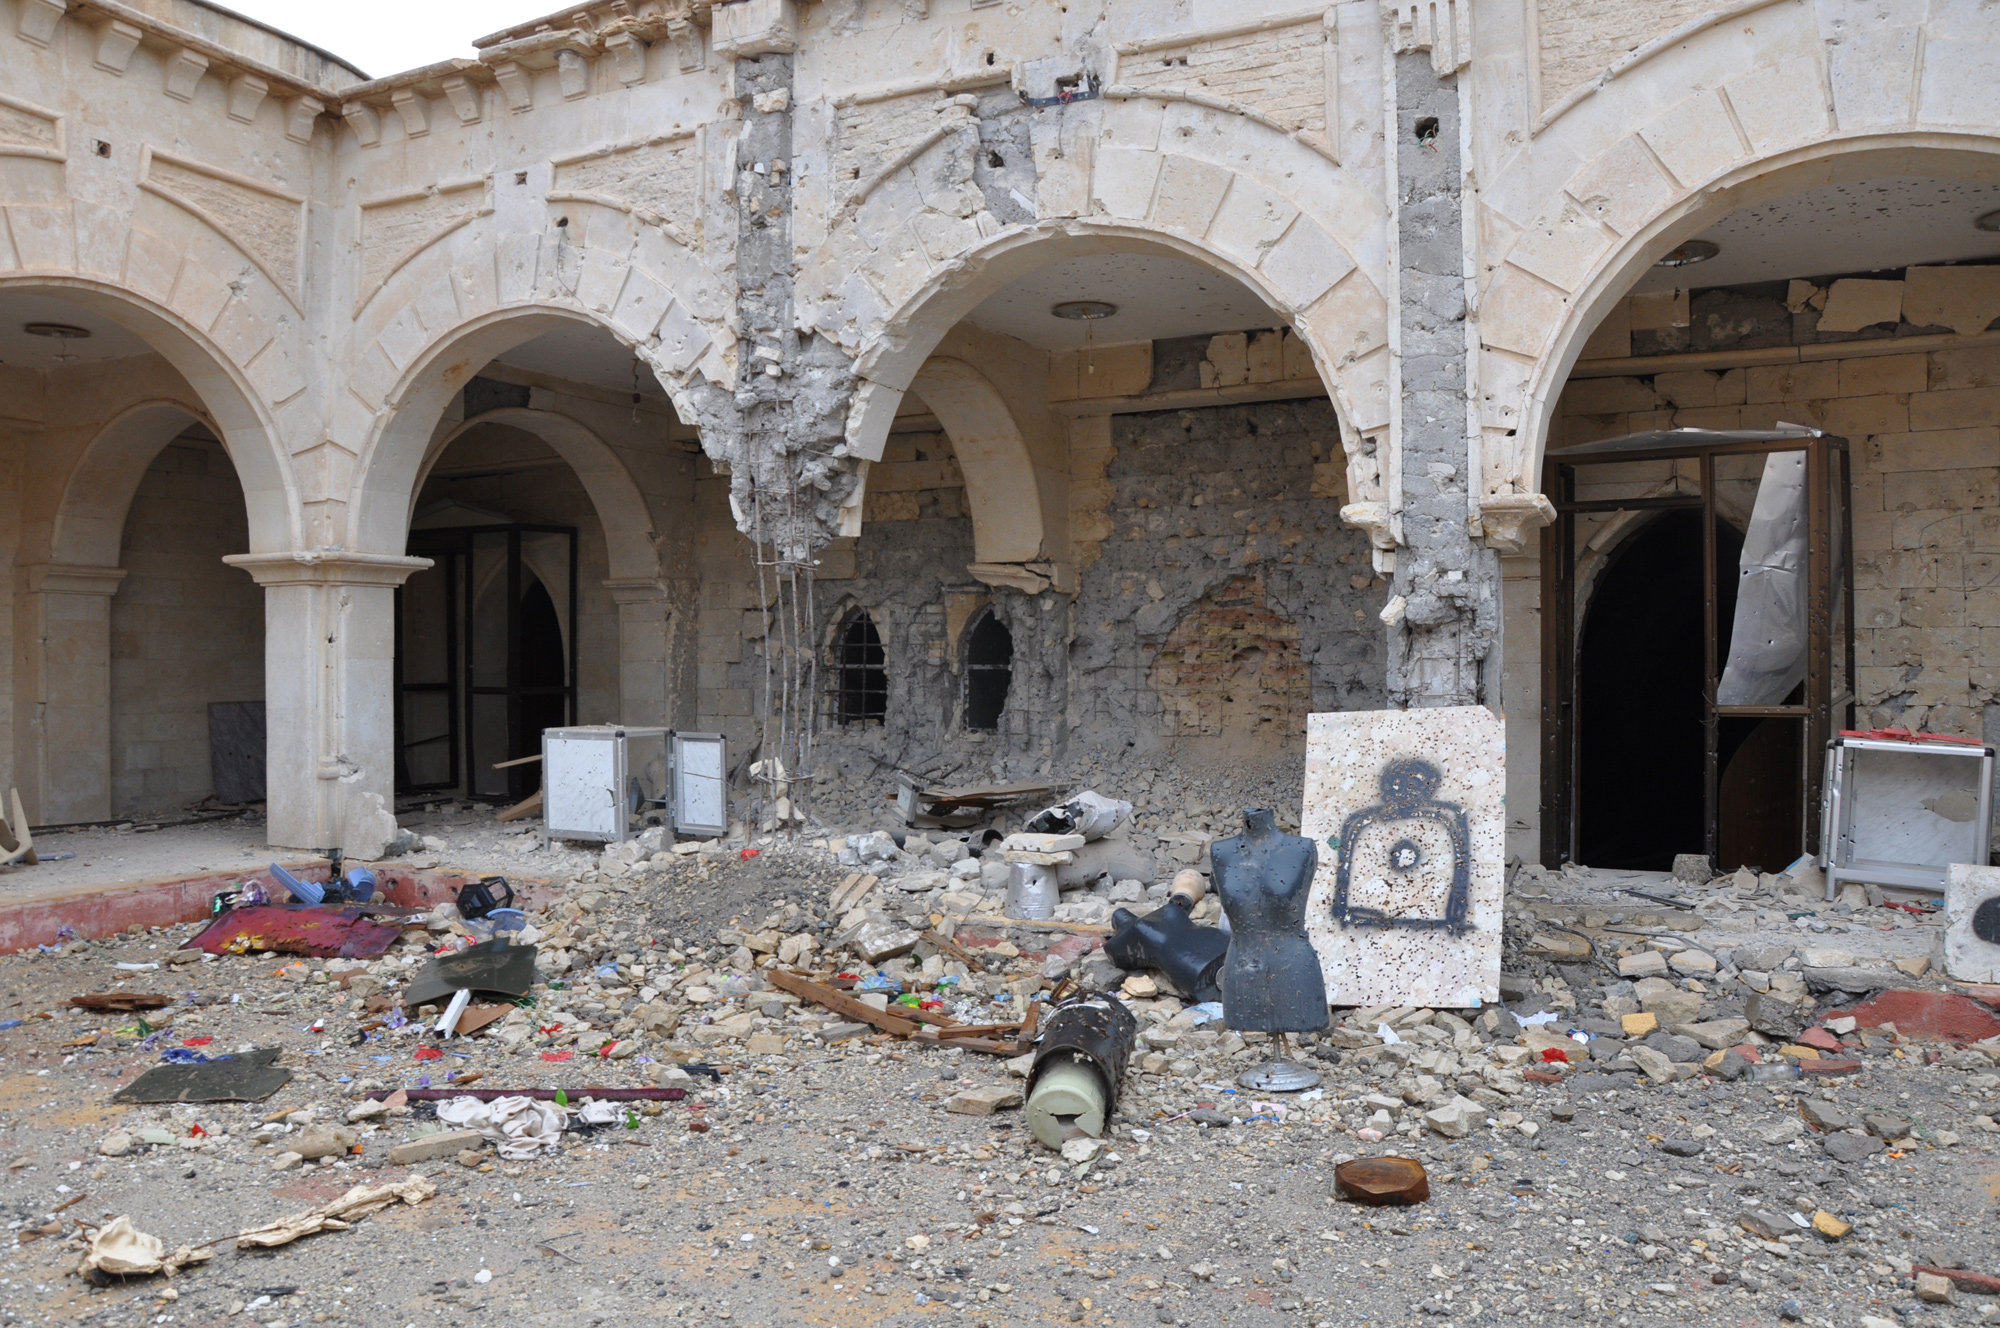 The destroyed courtyard of Qaraqoosh's Al-Taheera church, the largest in Iraq and one of the biggest in the Middle East. ISIS transformed the grounds into a shooting range with mannequins from a nearby clothing shop. (Photo by Lauren Bohn/GroundTruth)